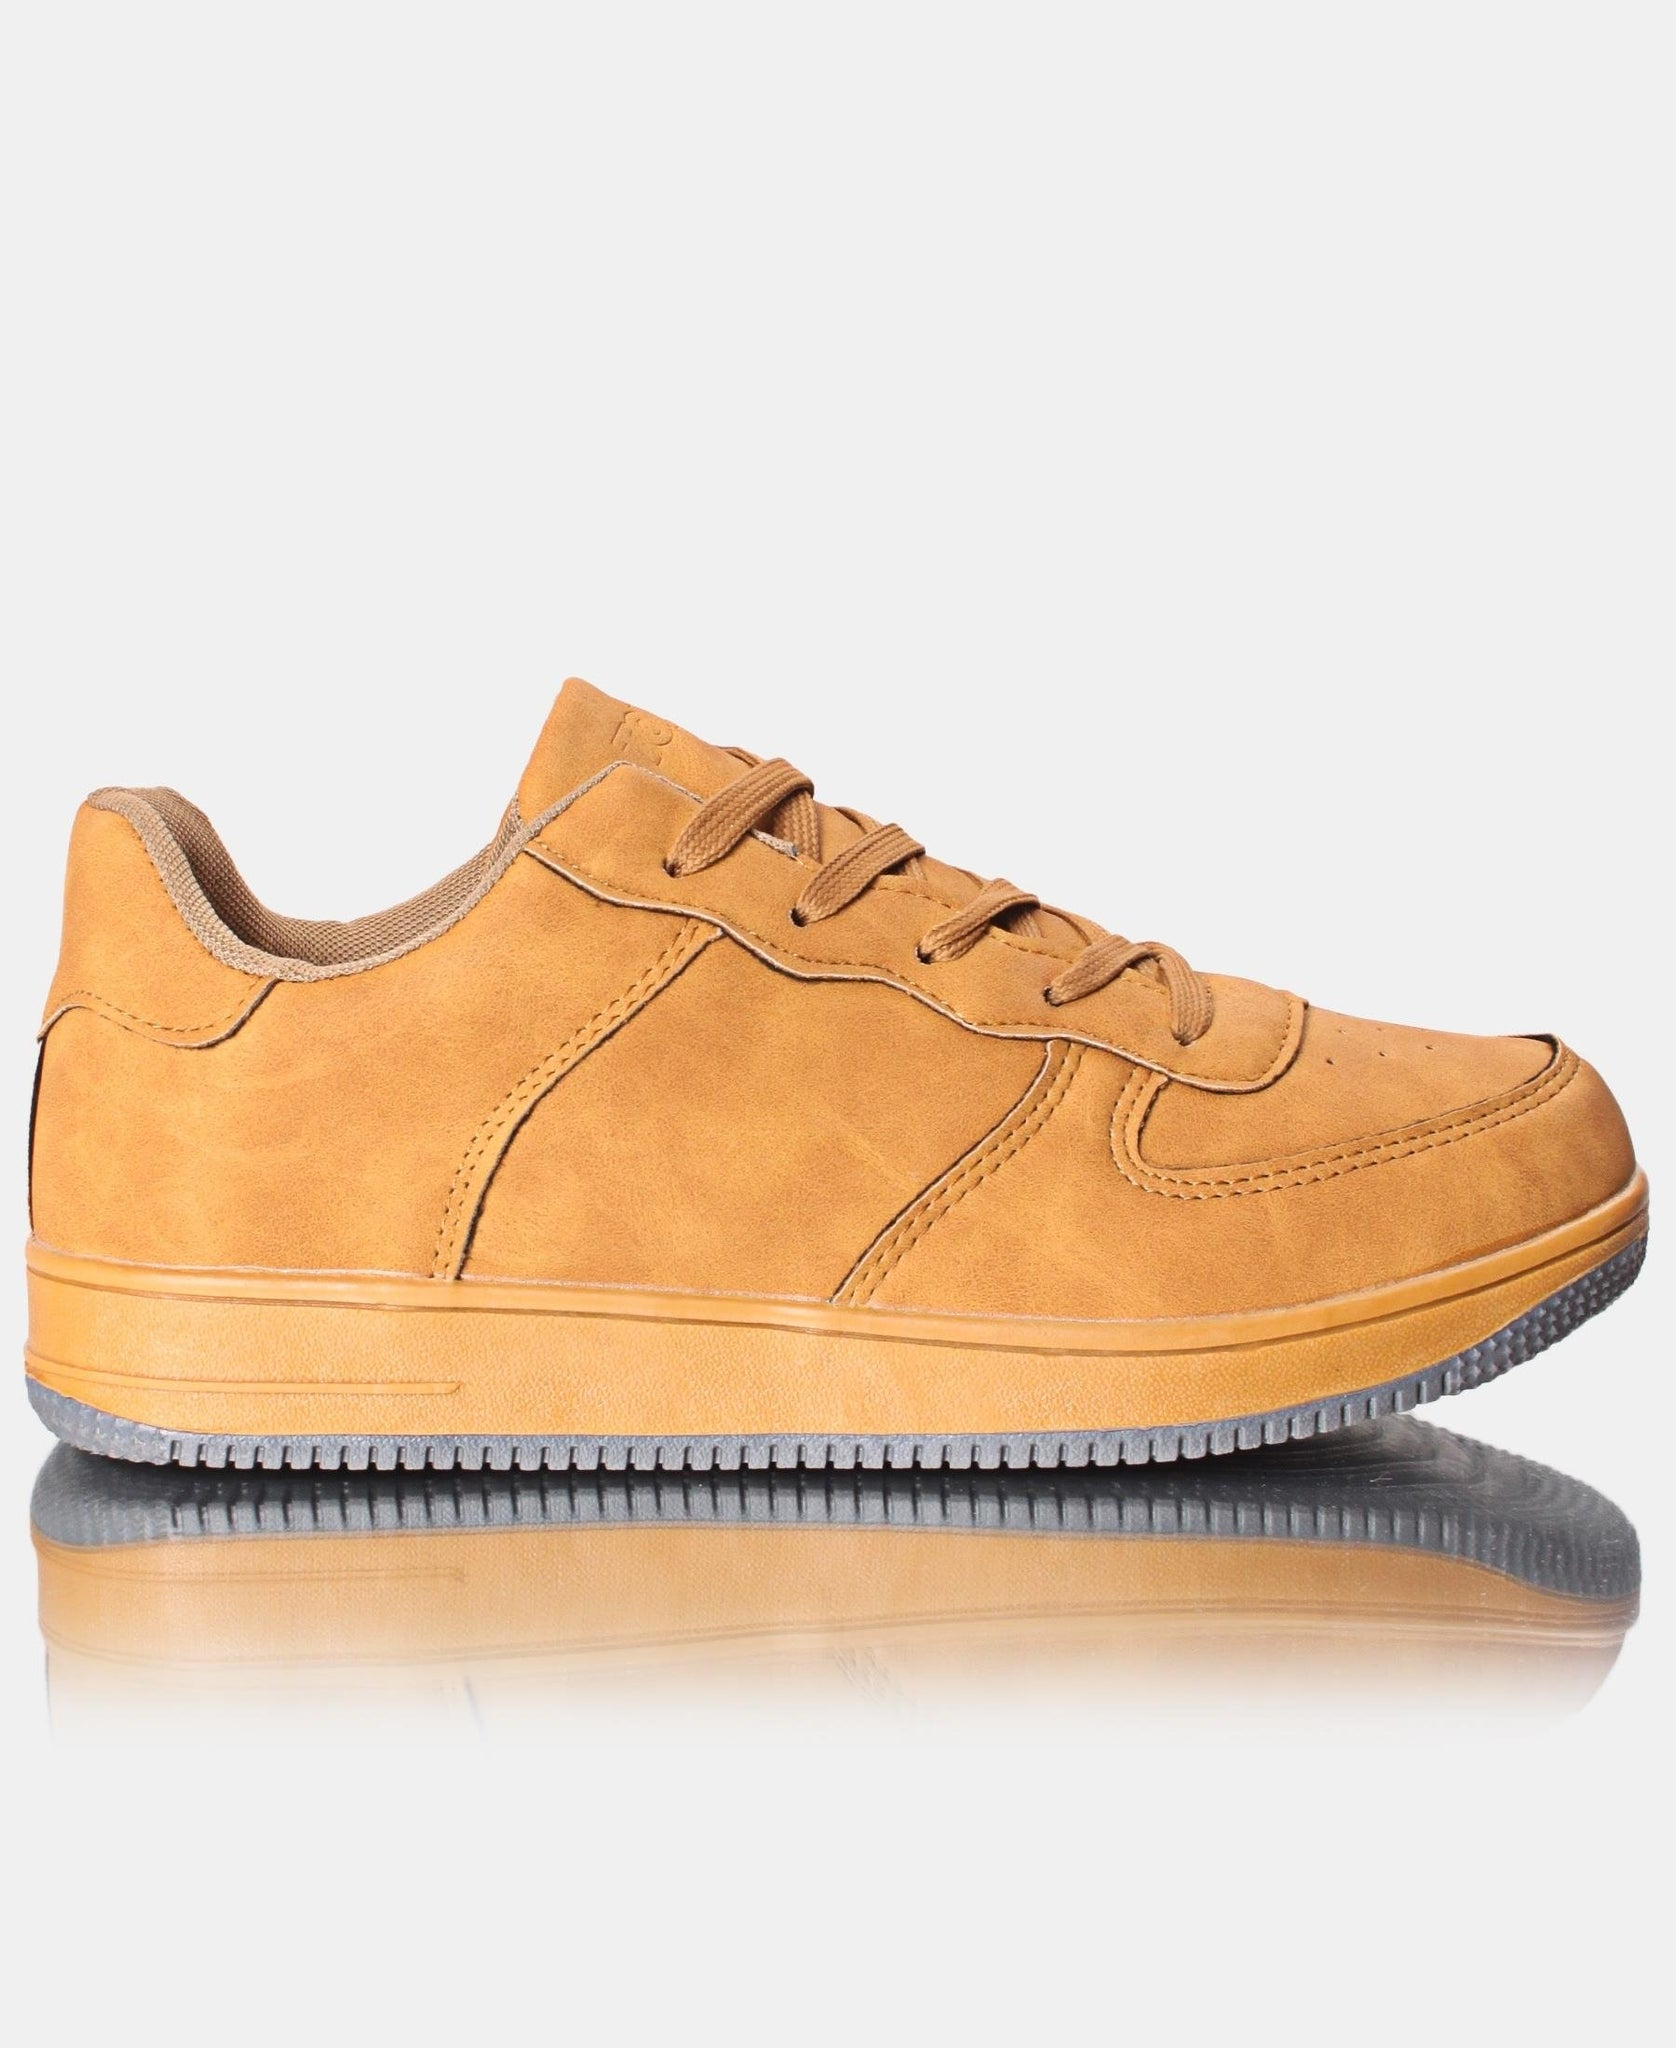 Men's Air Solid Sneakers - Tan